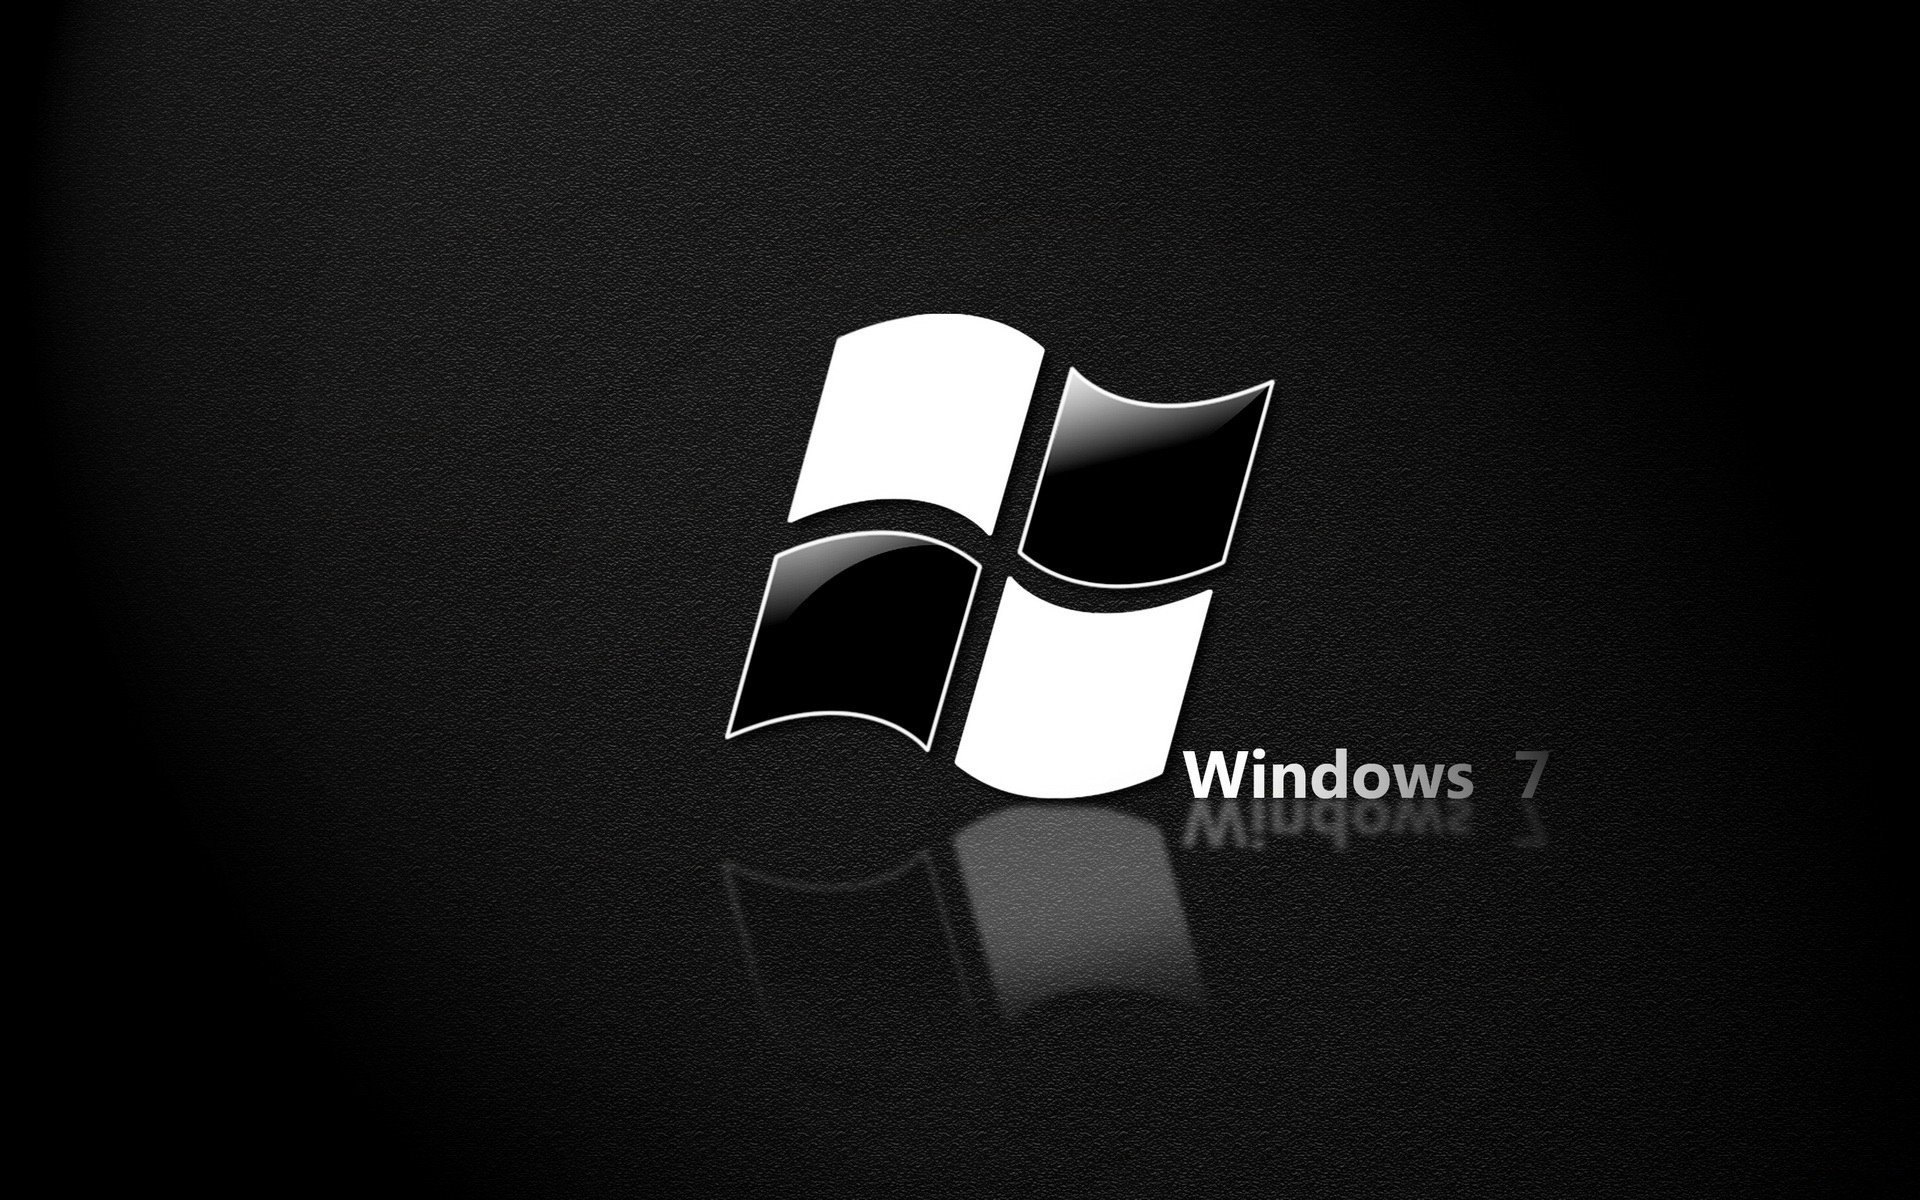 技术 - Windows 7  壁纸